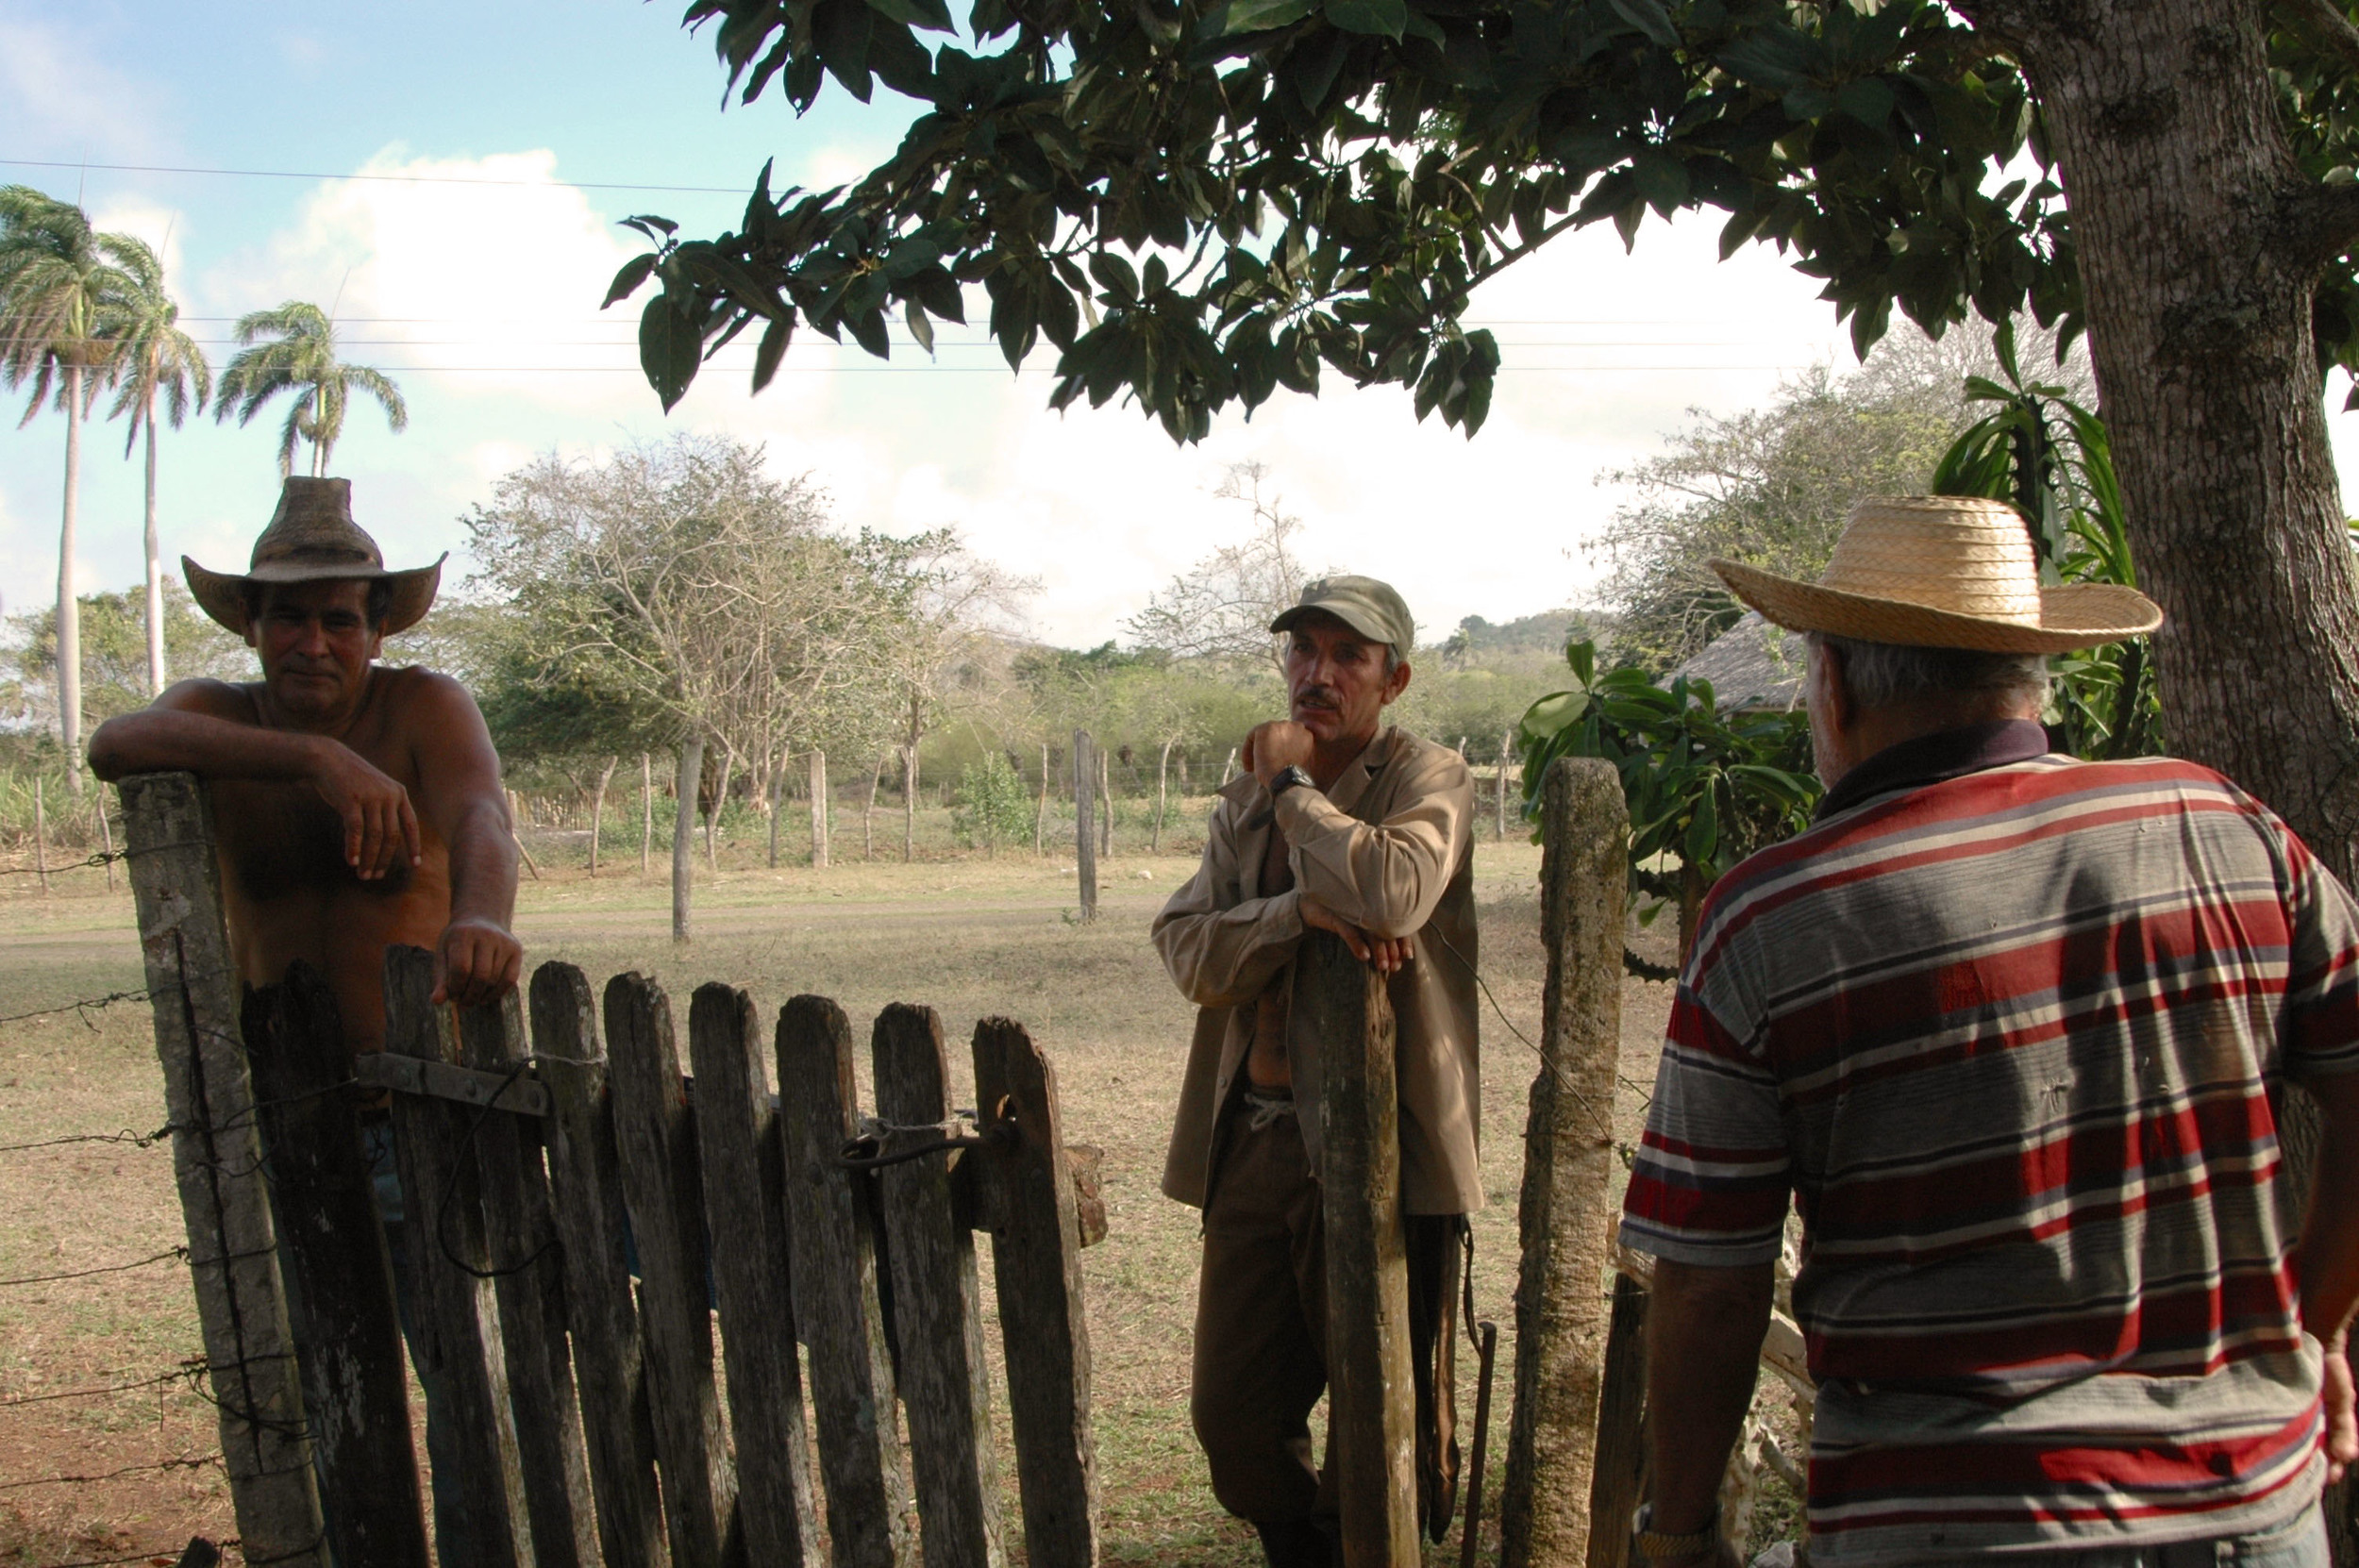 The man on the left was working a cane field when we arrived and got goosebumps when we showed him the old photos of the ranch